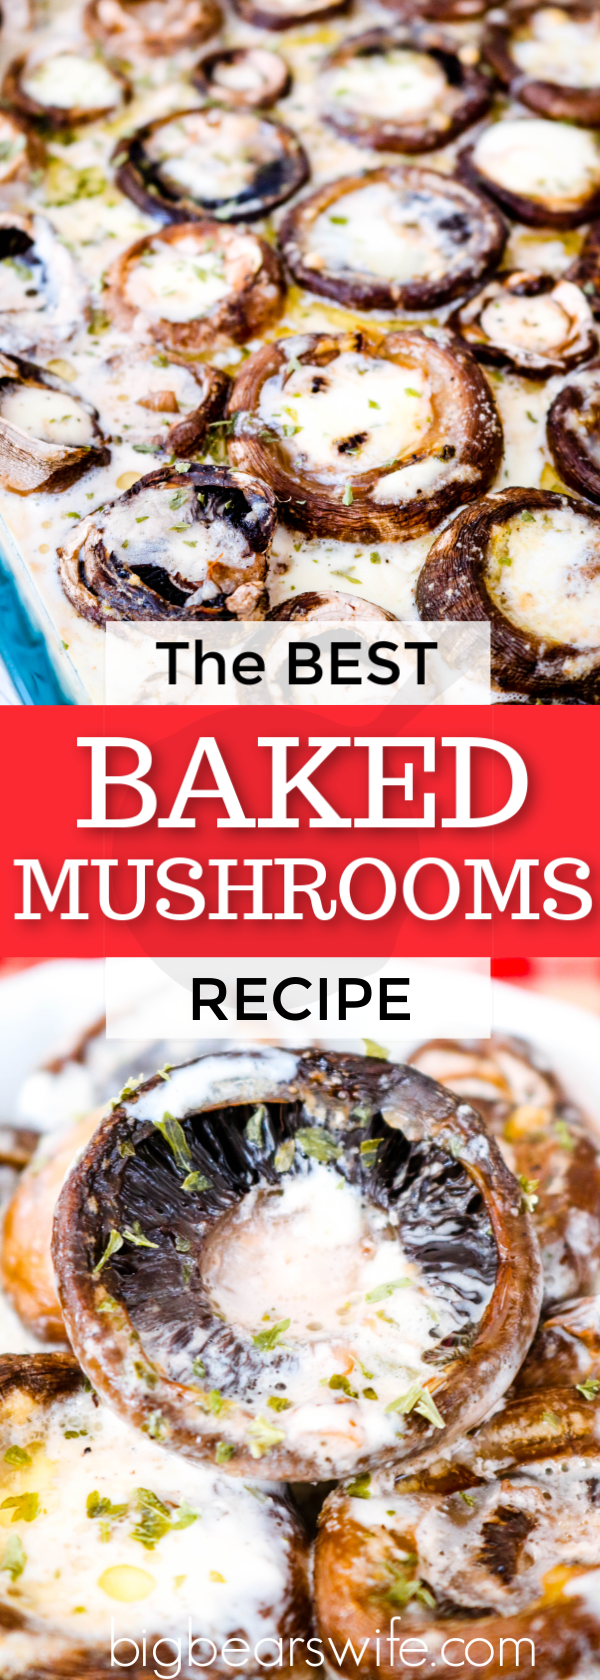 These mushrooms are baked in a tasty seasoned cream sauce and they're perfect as a party appetizer or as a side dish for lunch or dinner! They may be The BEST Baked Mushrooms I've ever had. #bakedmushrooms #mushrooms #ThanksgivingSideDish